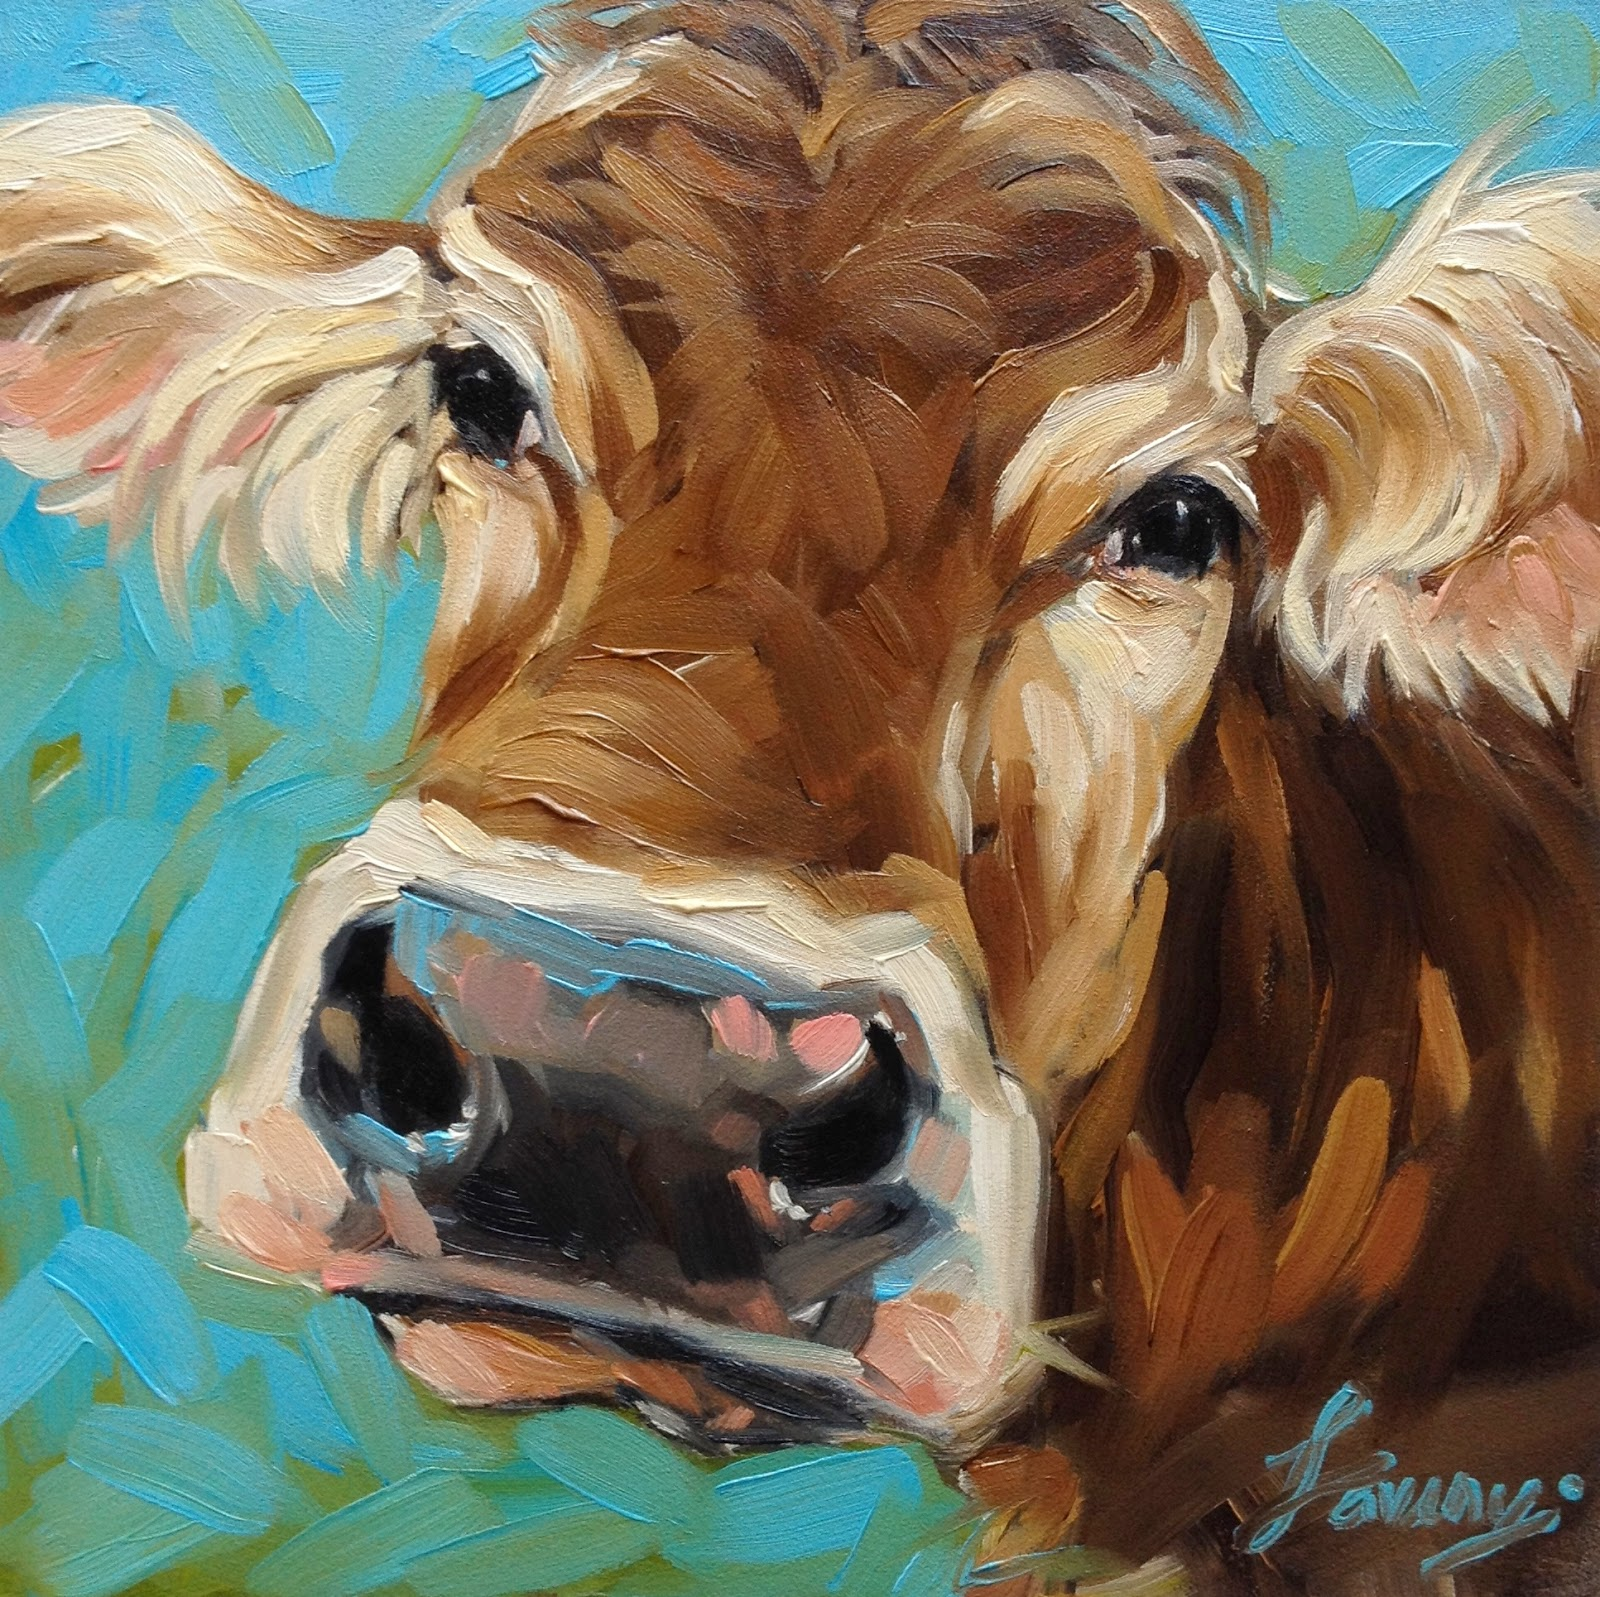 Cow Painting Portrait 6x6 Oil On Panel Available Etsy Shop LaveryART